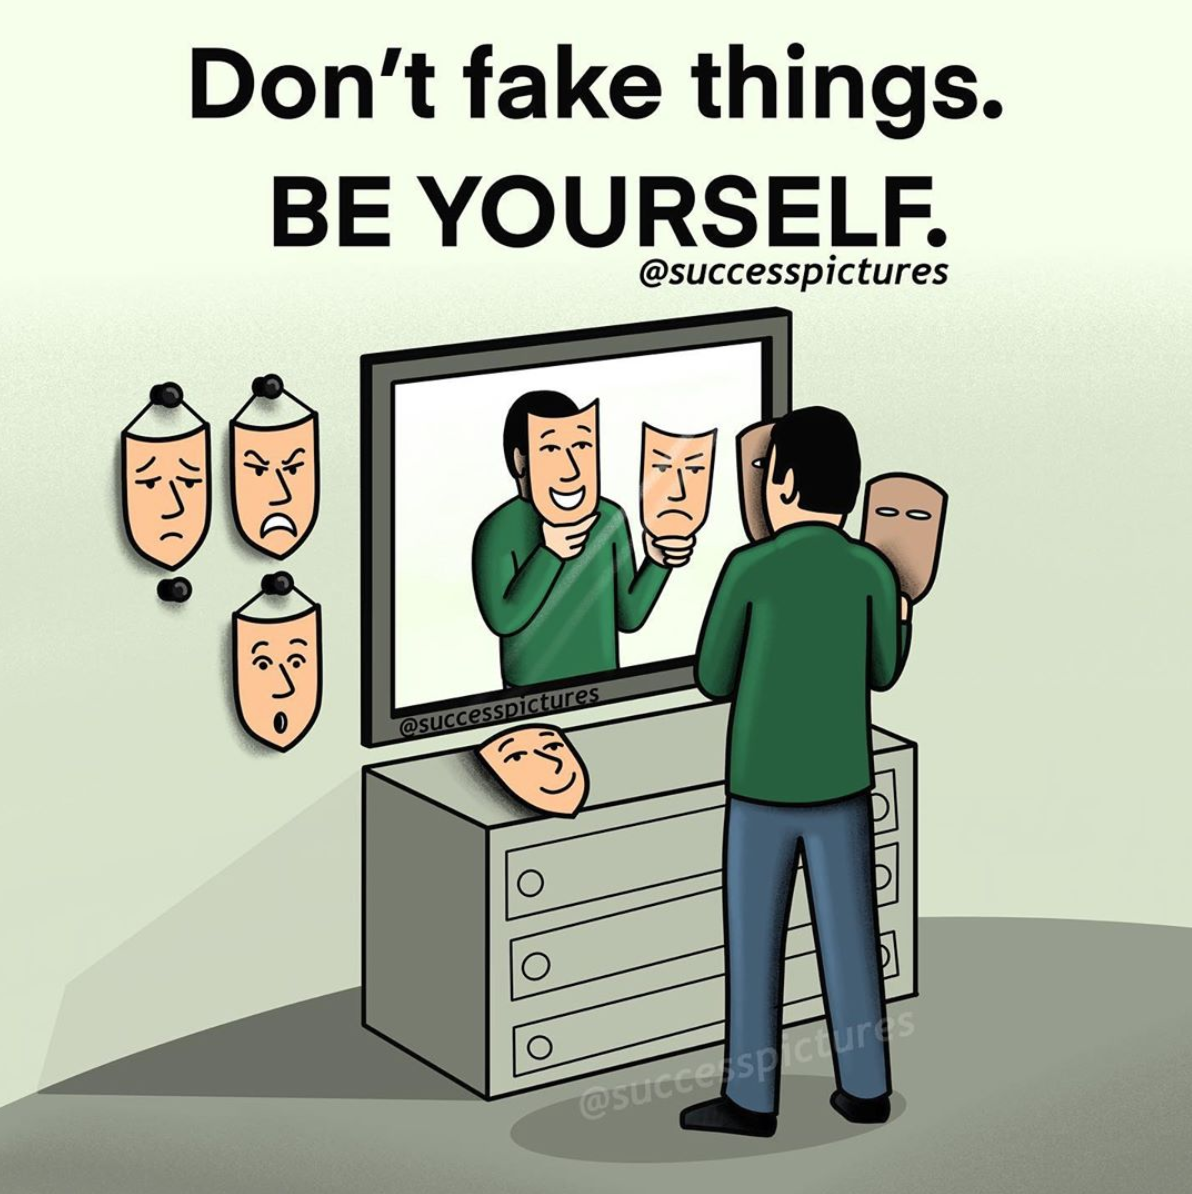 [Image] Be yourself is all you need to achieving success in your life